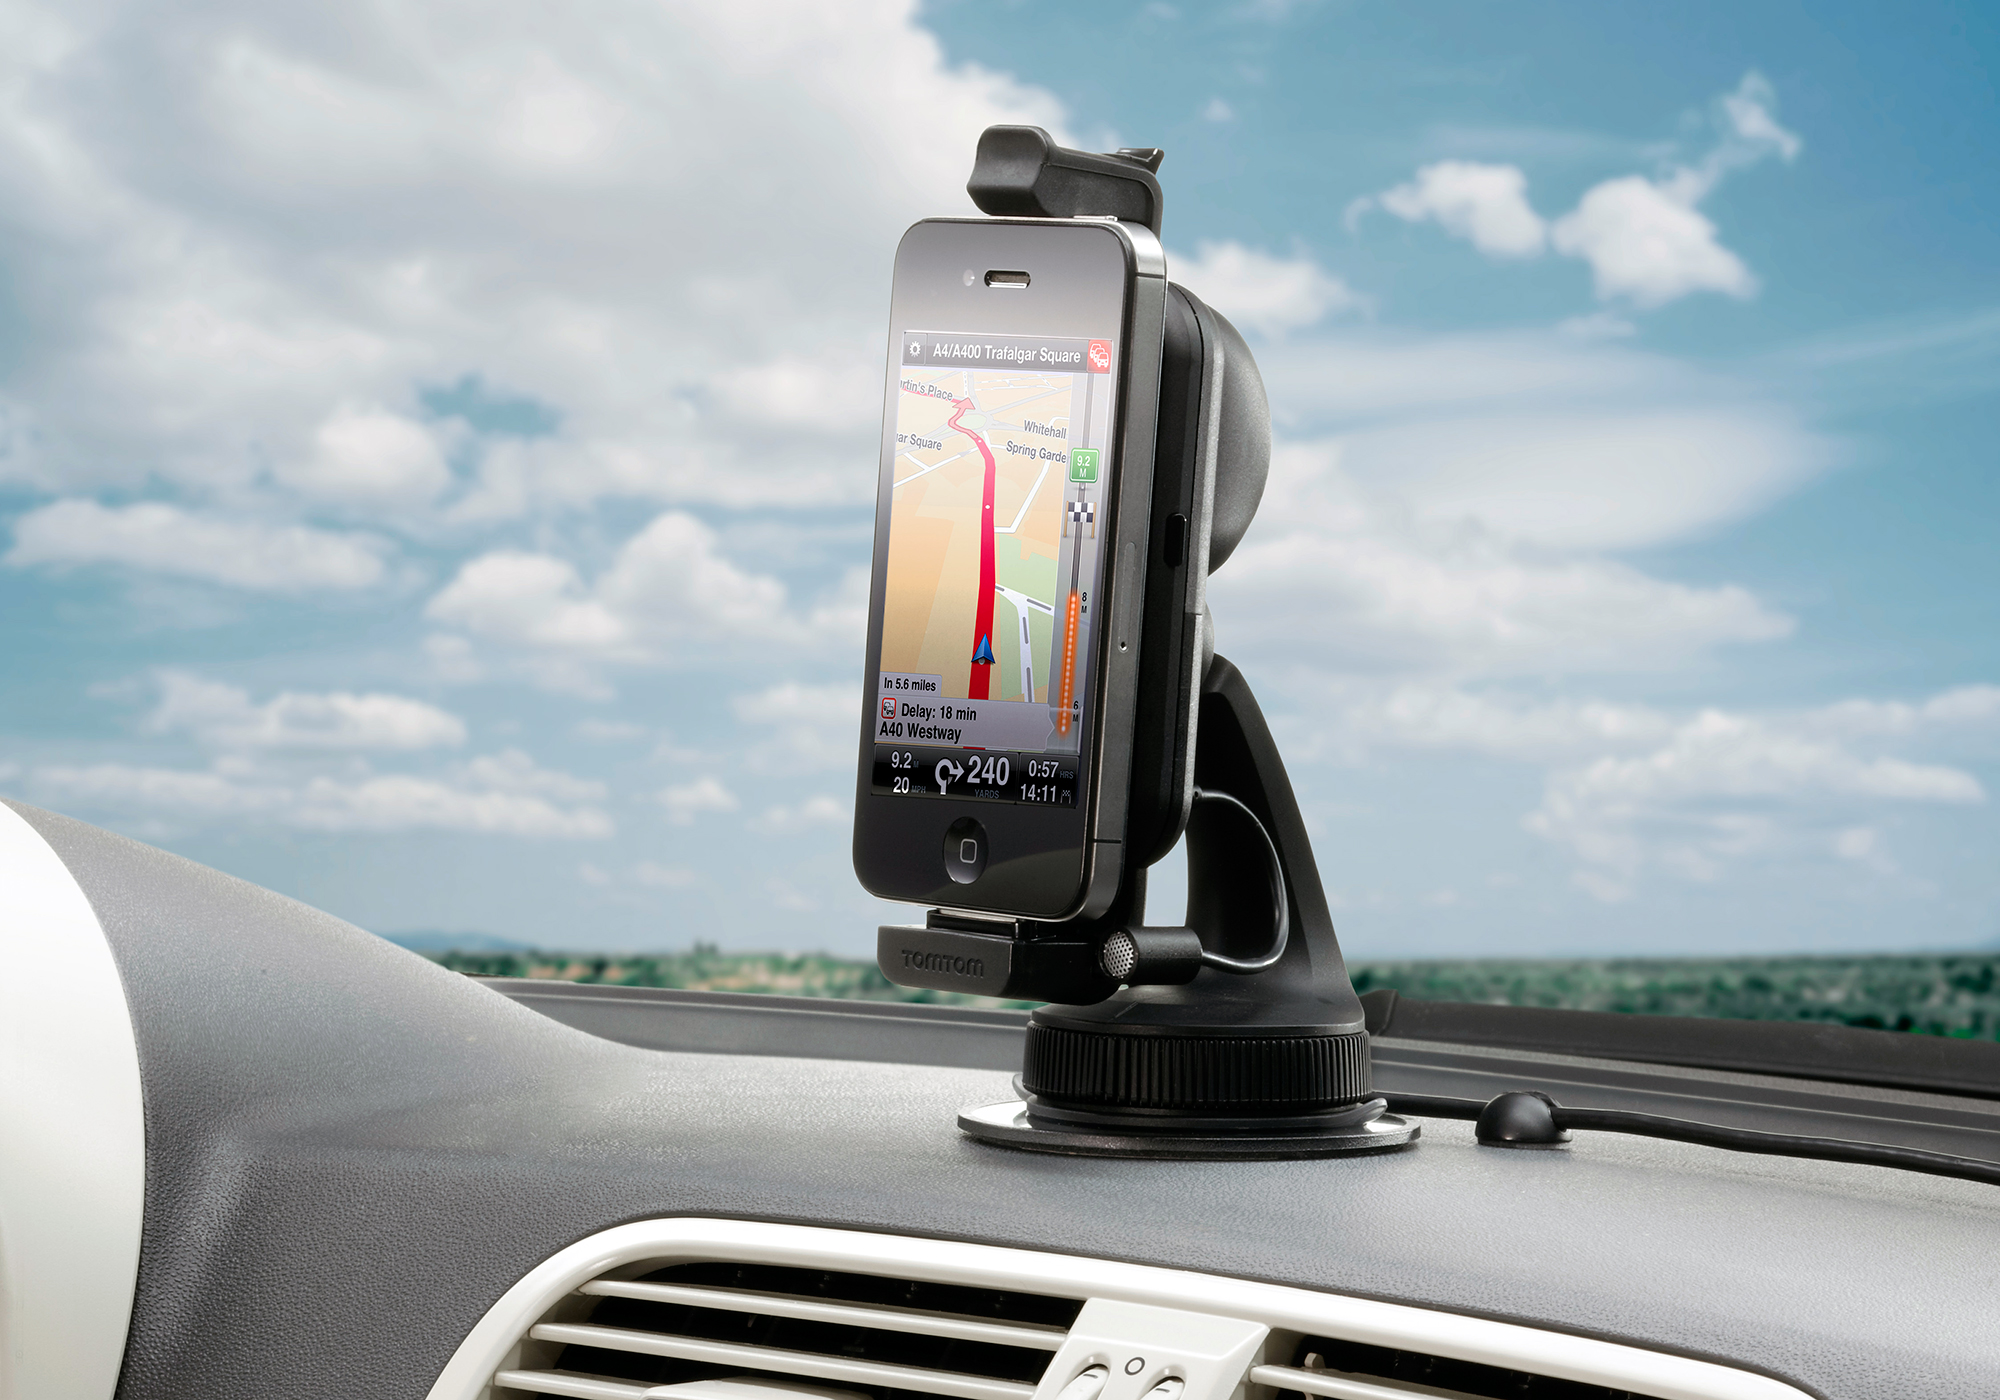 Novo TomTom Hands-Free Car Kit com iPhone